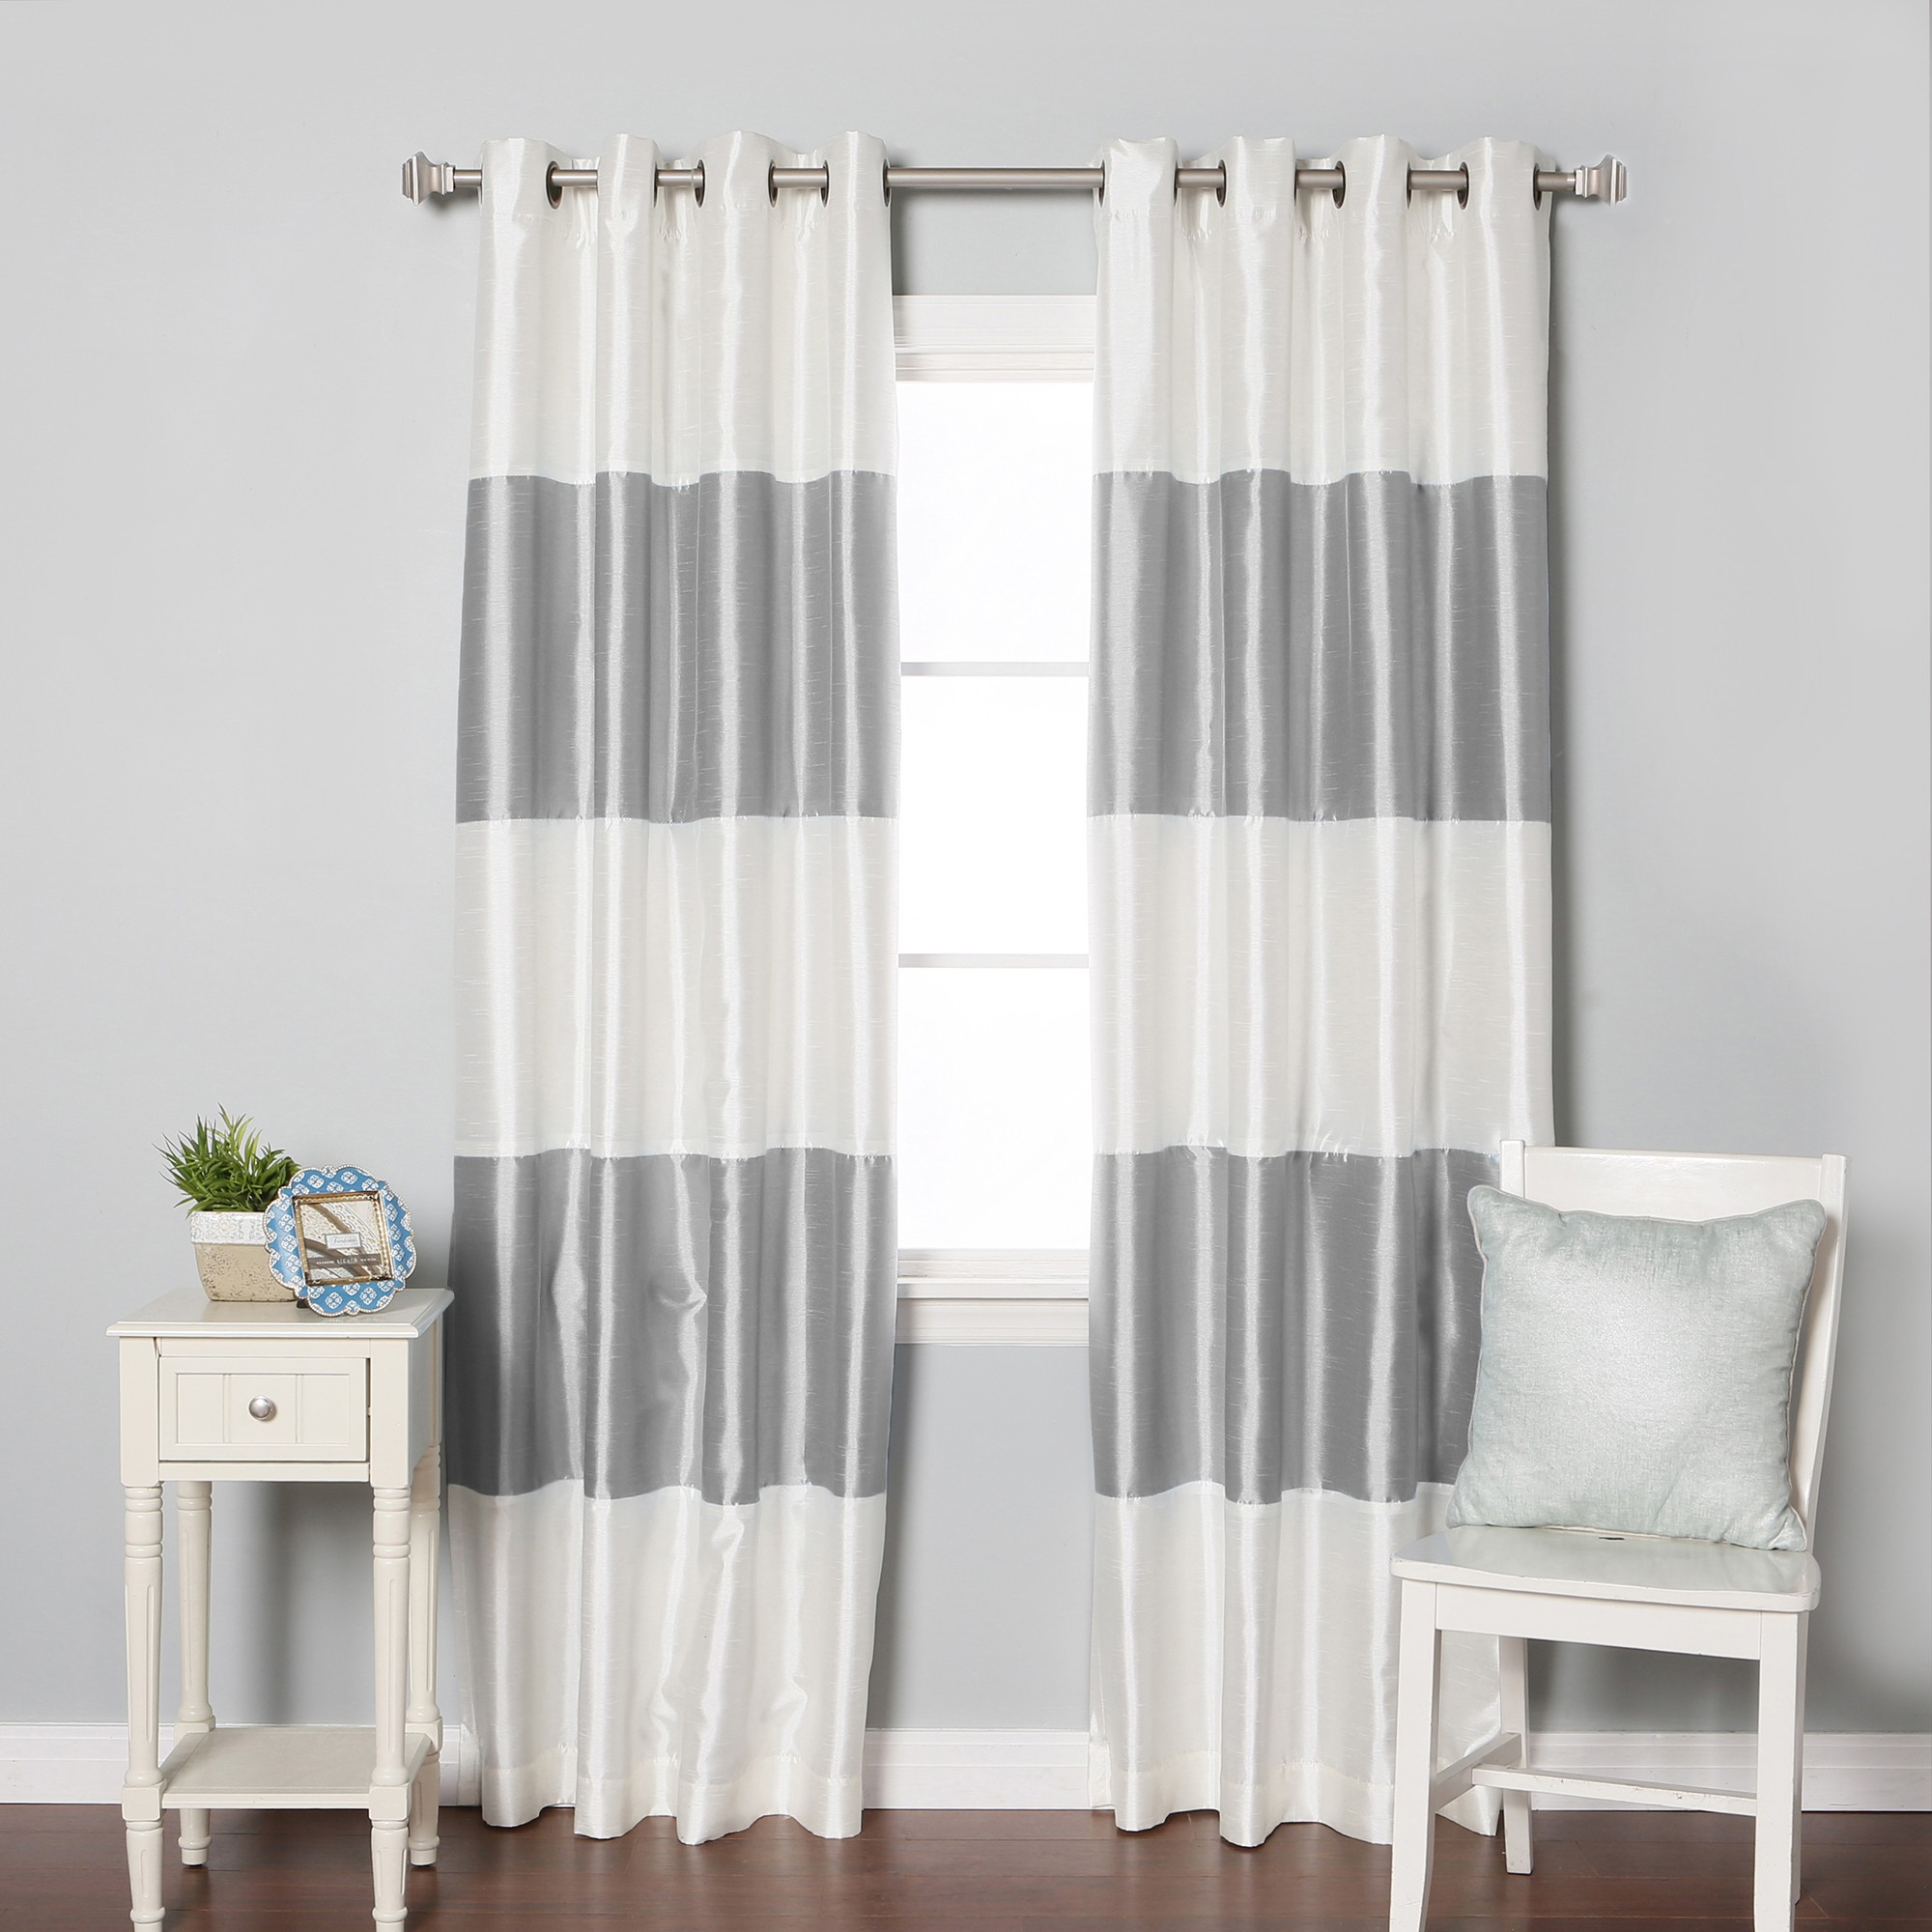 Picture of: Blackout Curtains Nursery